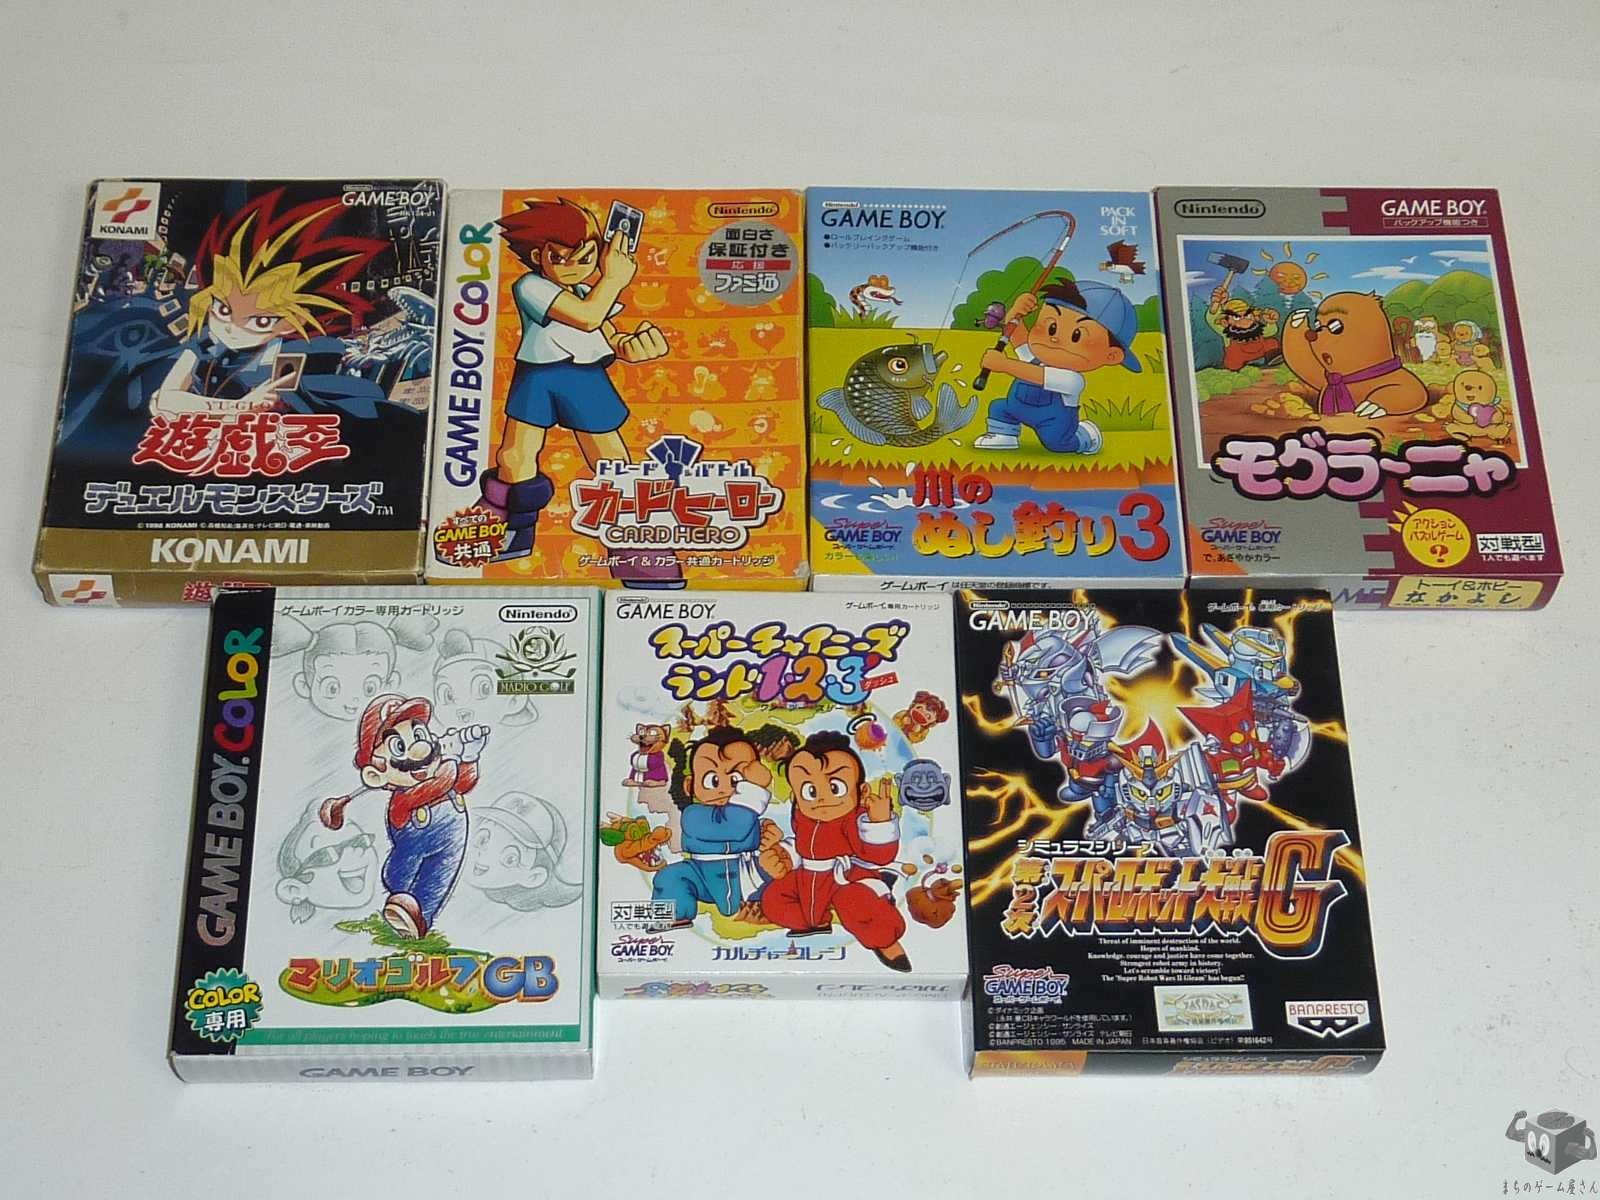 [GB] Super Chinese Land 1, 2, 3'...etc 7 Games Set